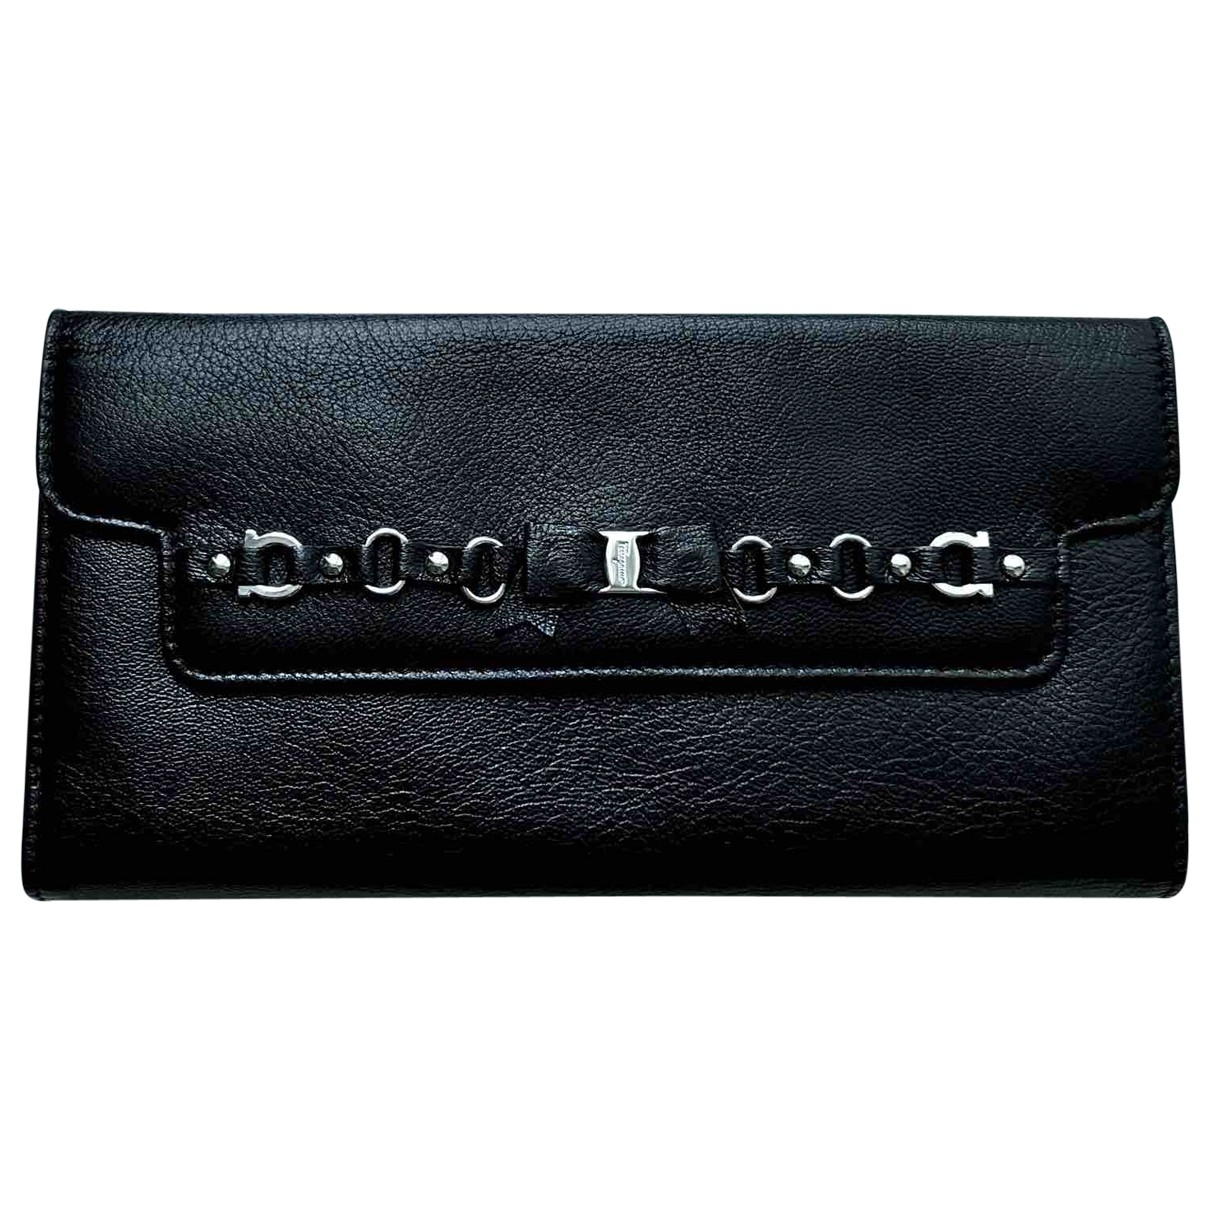 Salvatore Ferragamo \N Black Leather wallet for Women \N